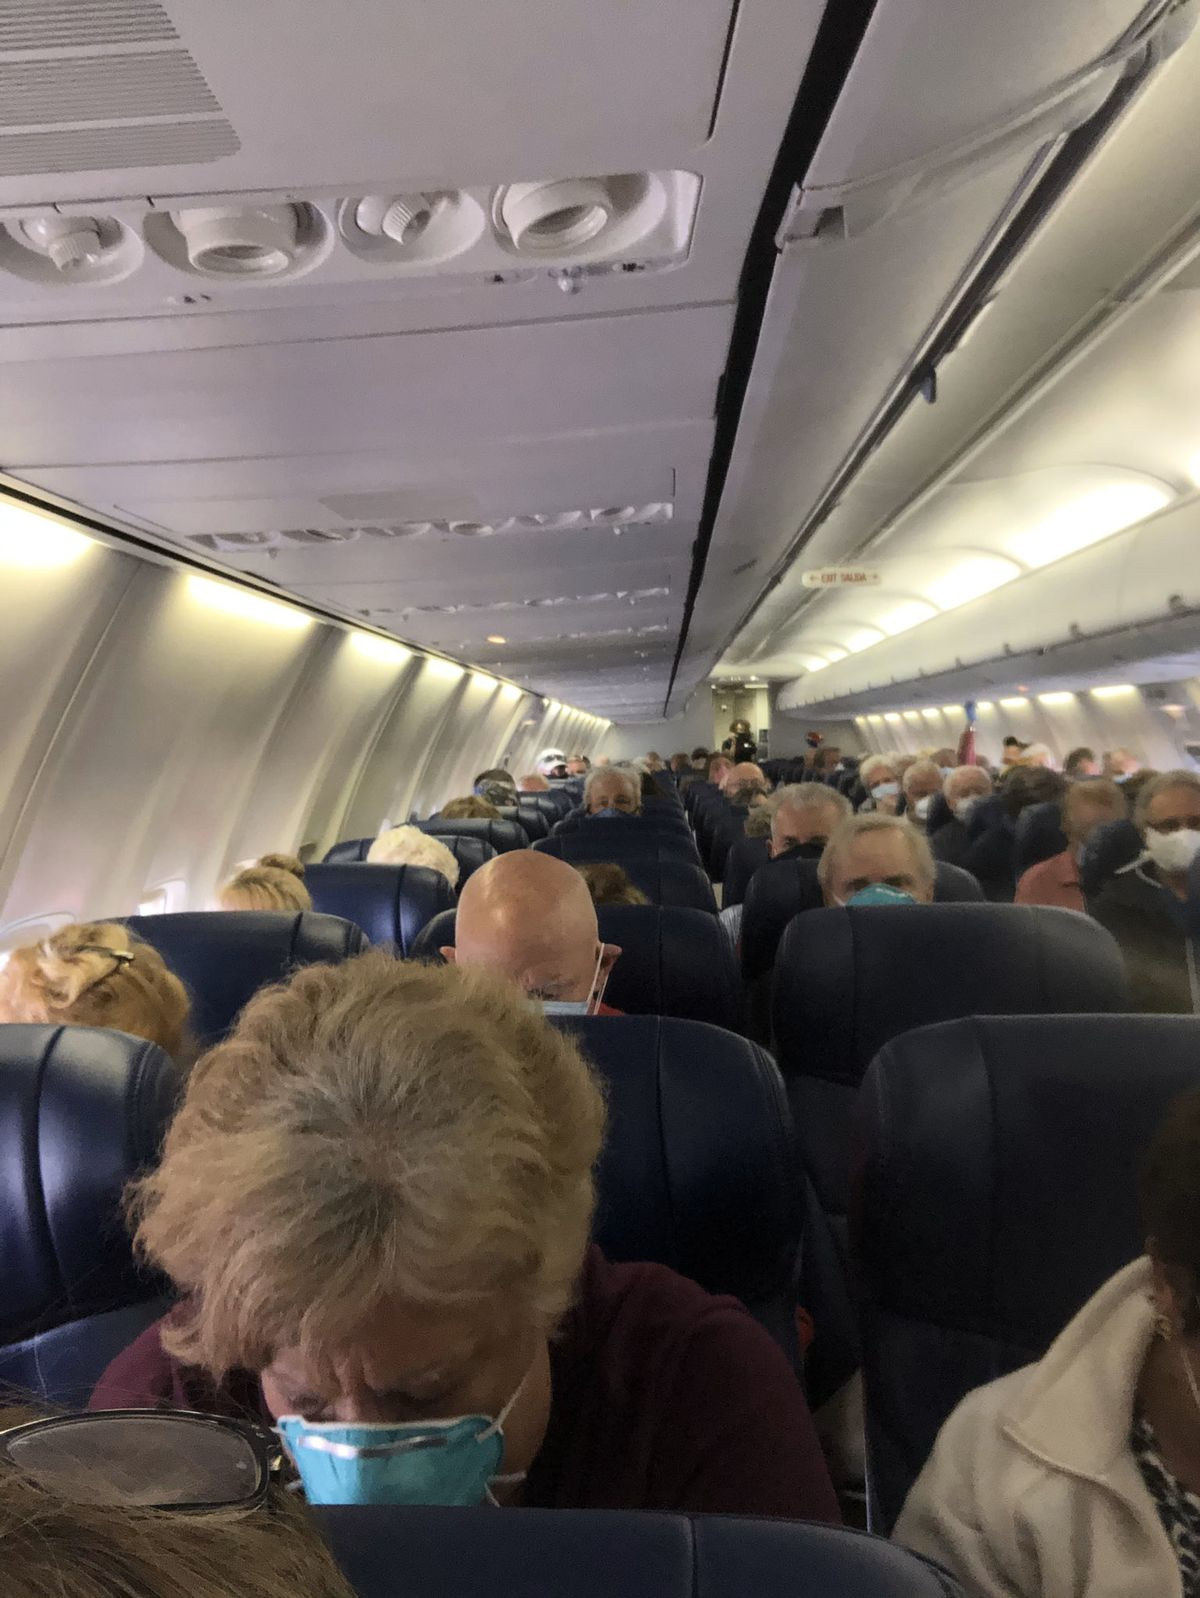 A crowded plane with elderly masked people.